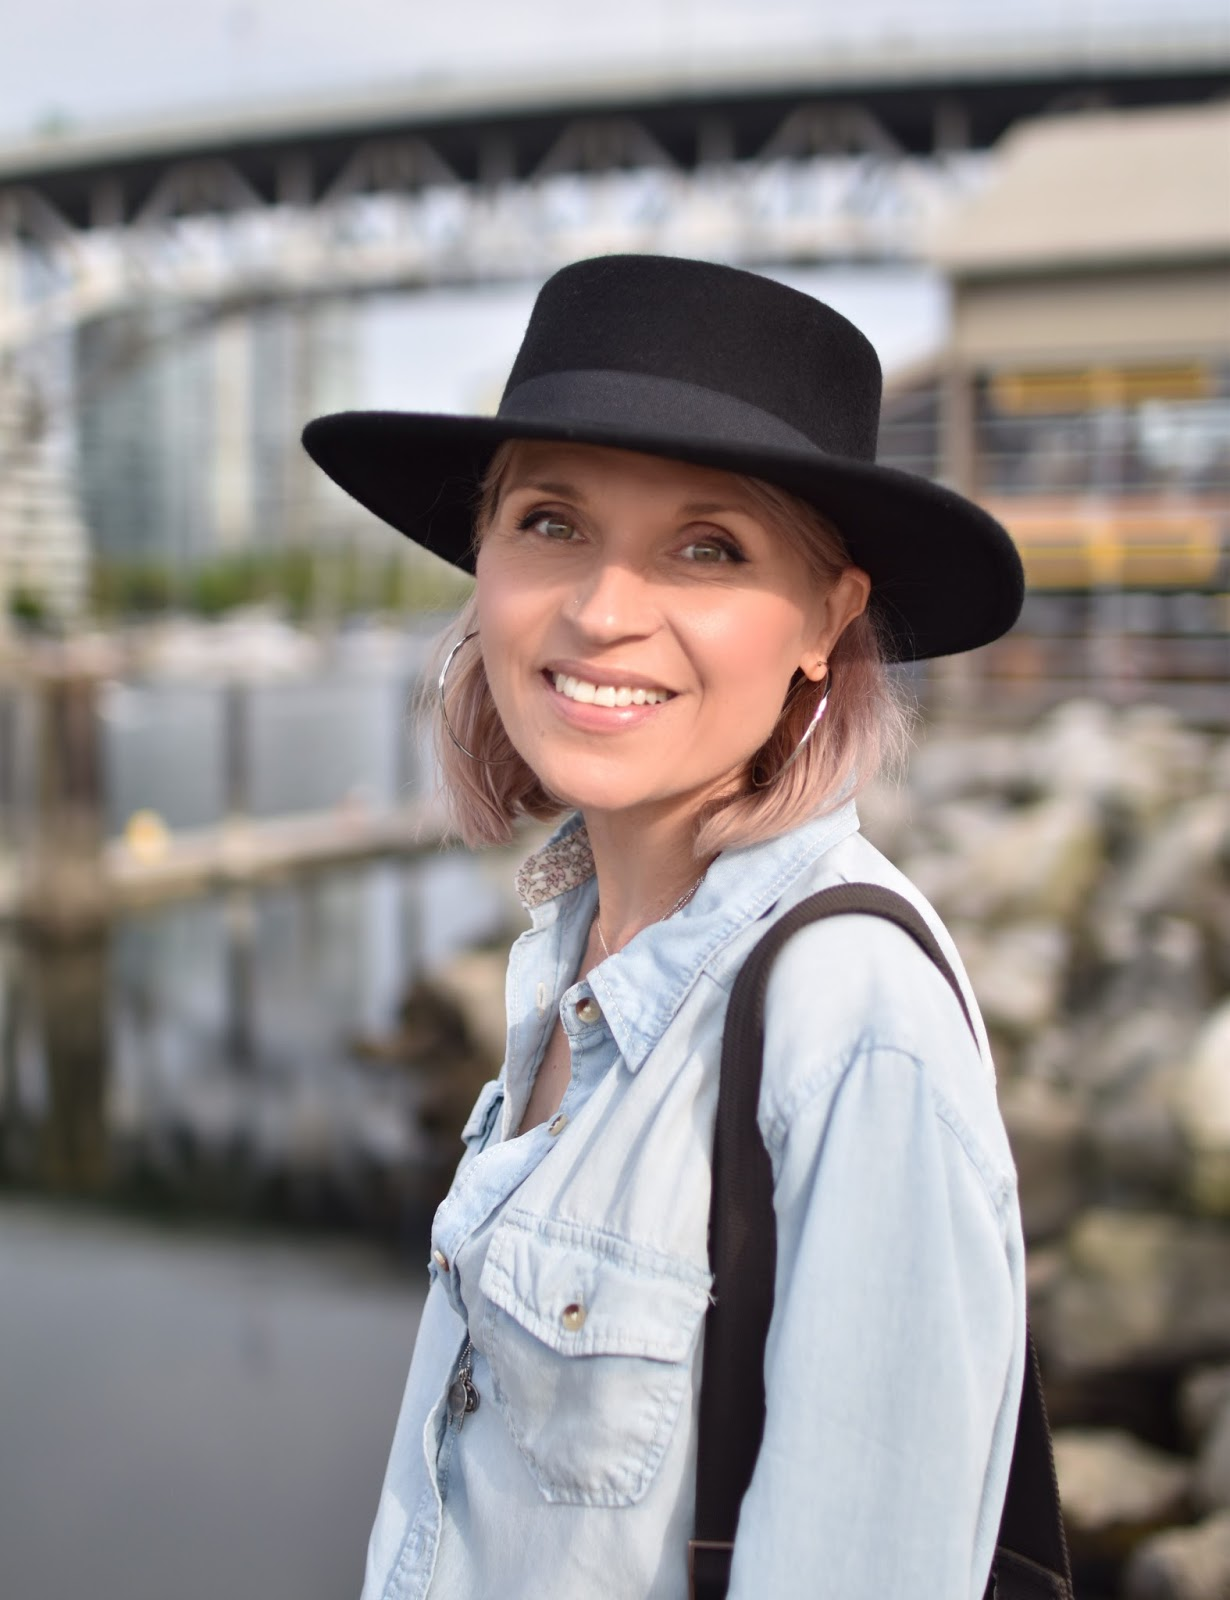 Monika Faulkner personal style inspiration - chambray shirt, Lucky Brand bowler hat